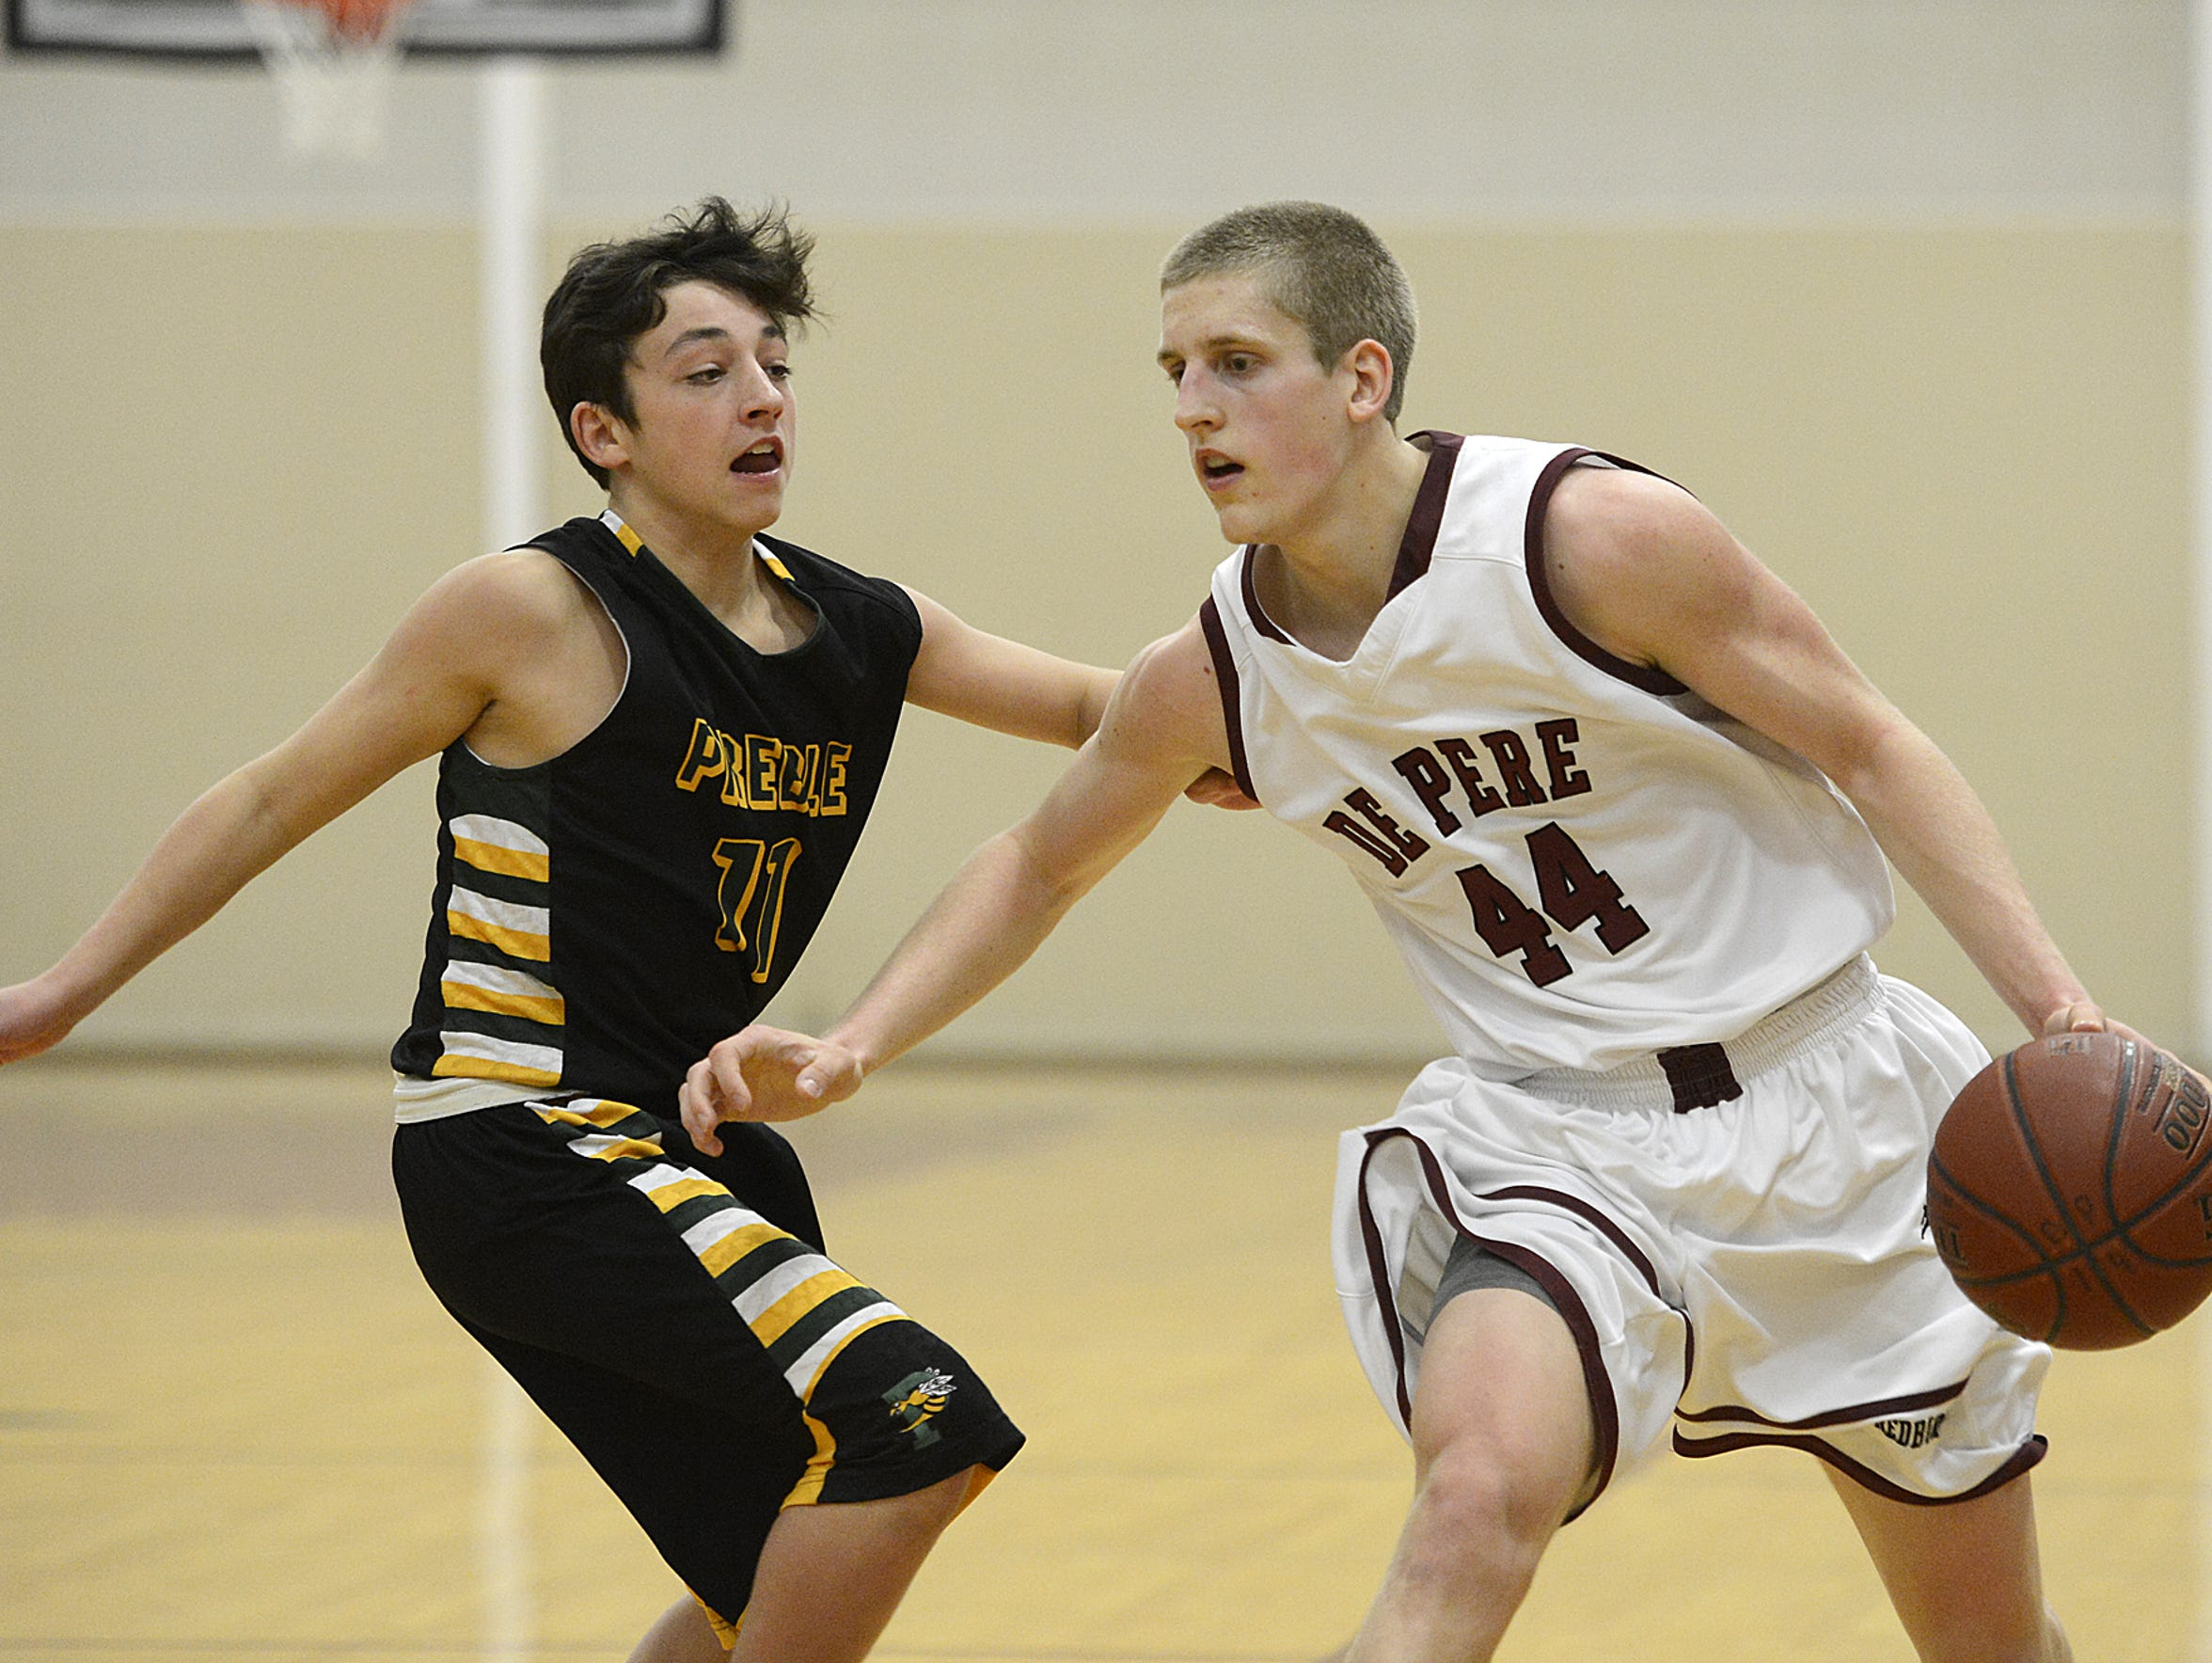 De Pere's Brevin Pritzl came up just short of breaking